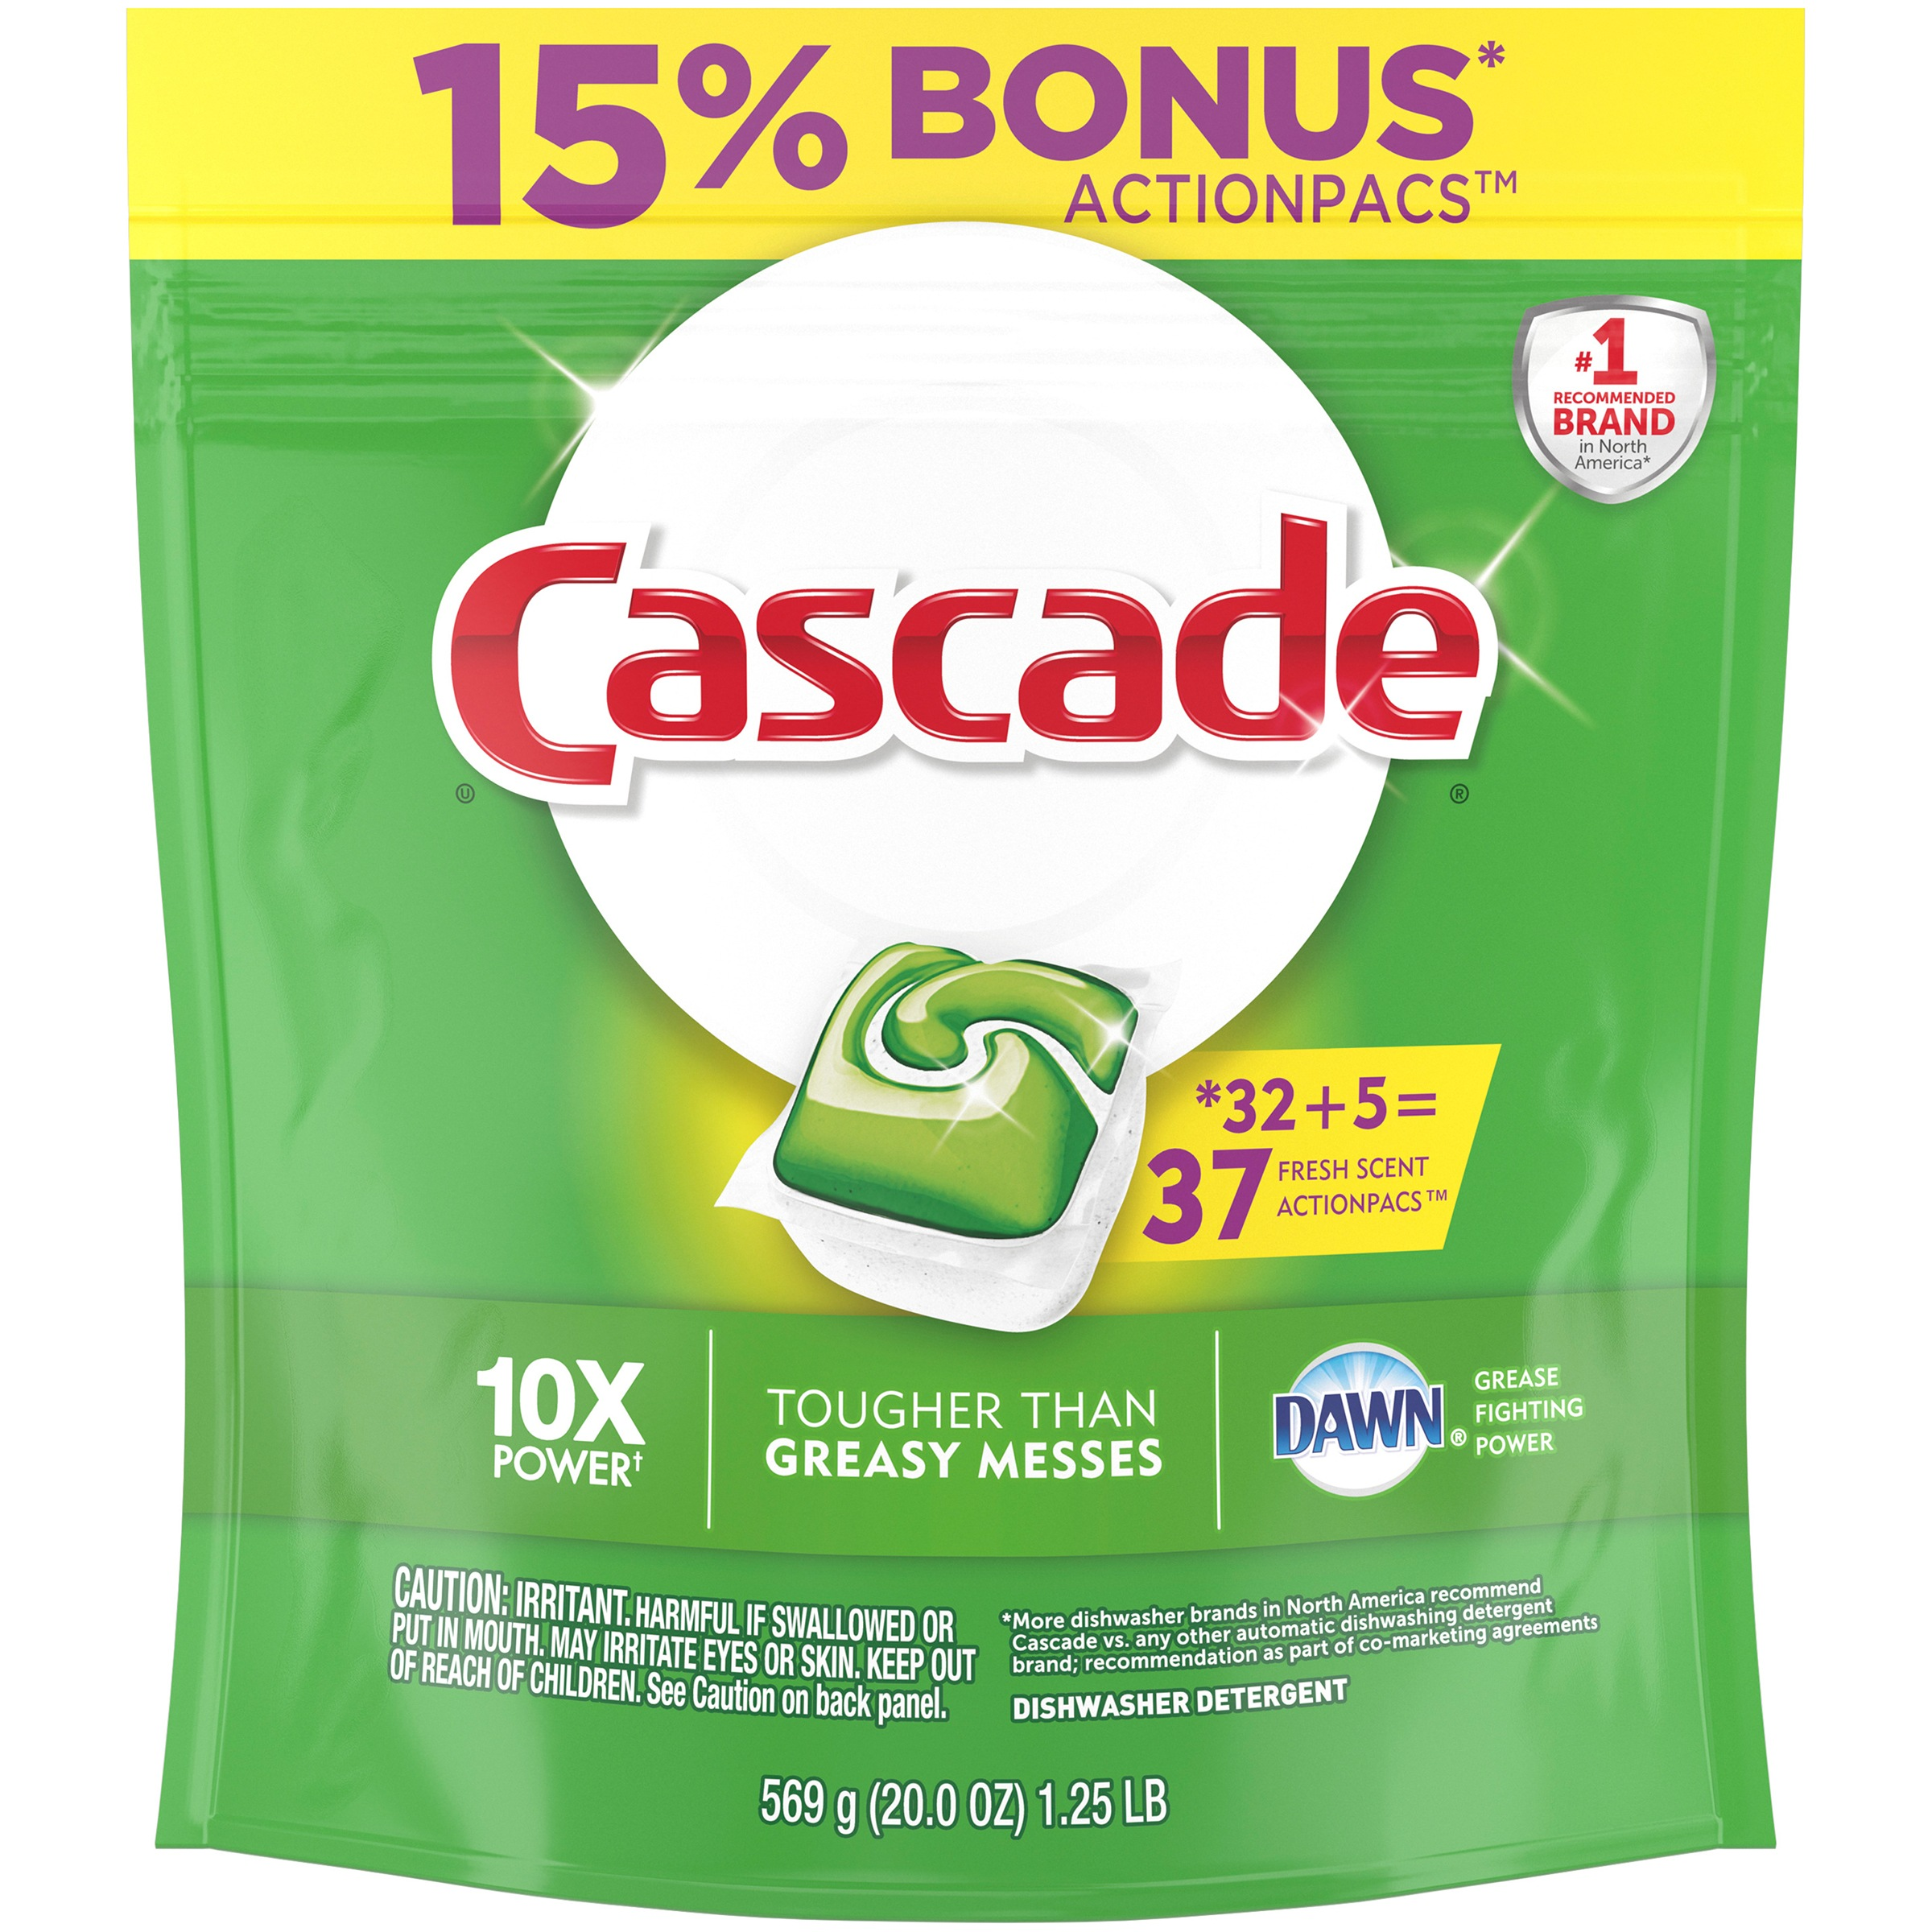 Cascade ActionPacs Dishwasher Detergent, Fresh, 37 count